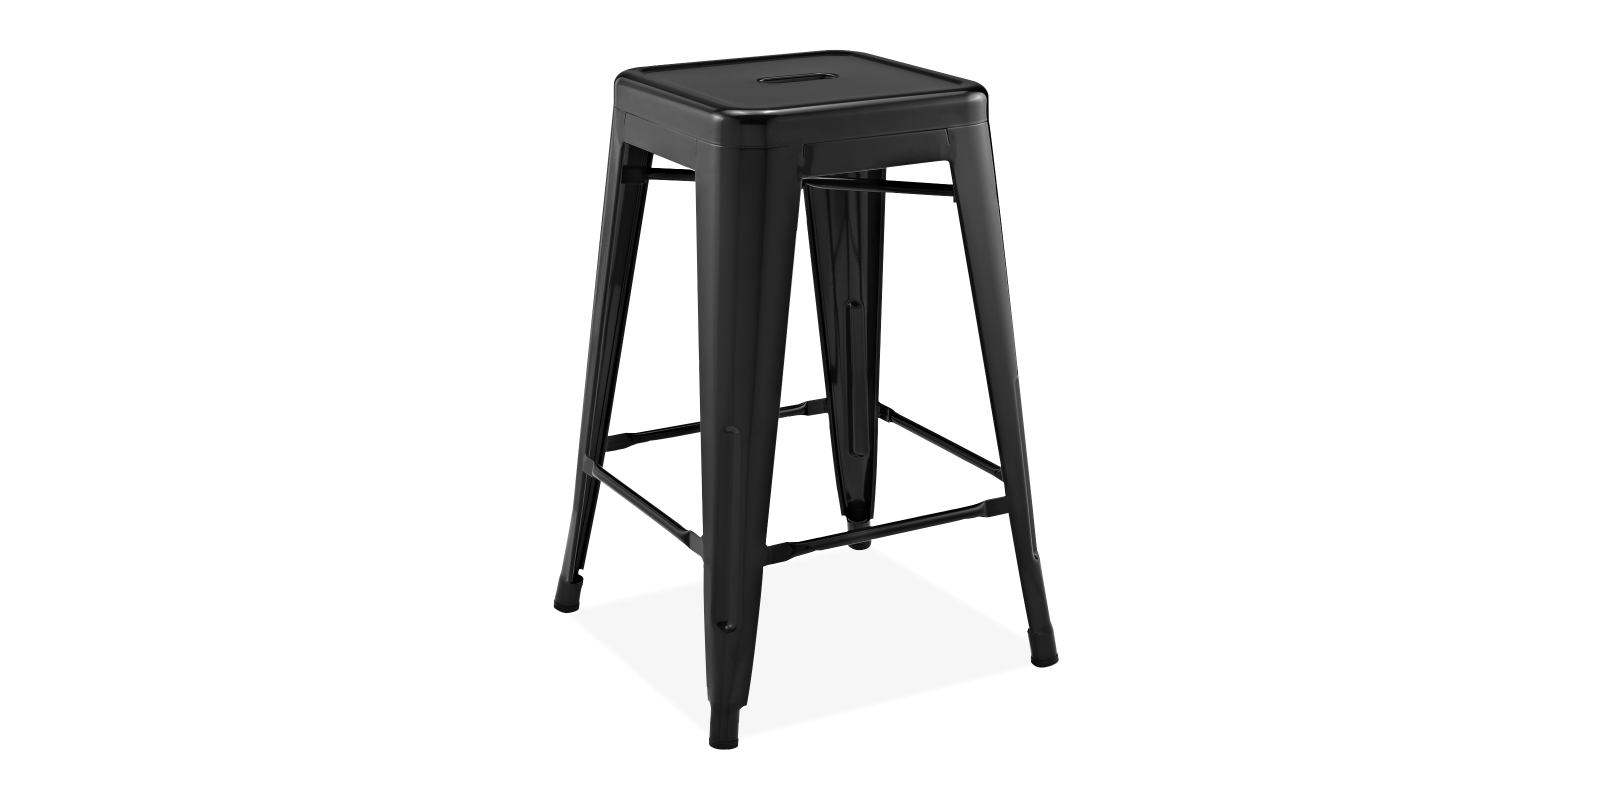 Sit With Style on Tolix Bar Stool